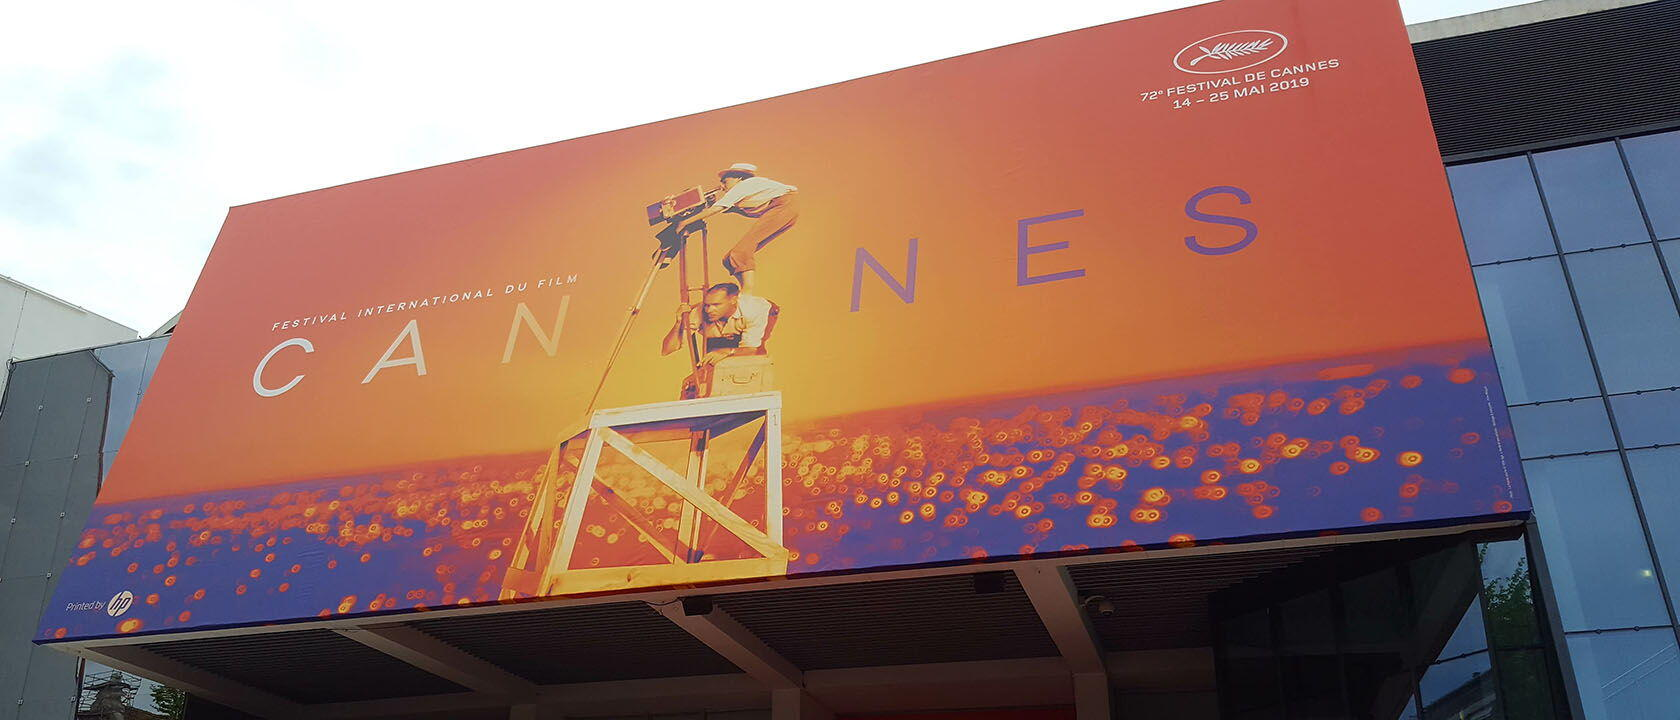 Cannes Film Festival Official Poster on Billboard 2019